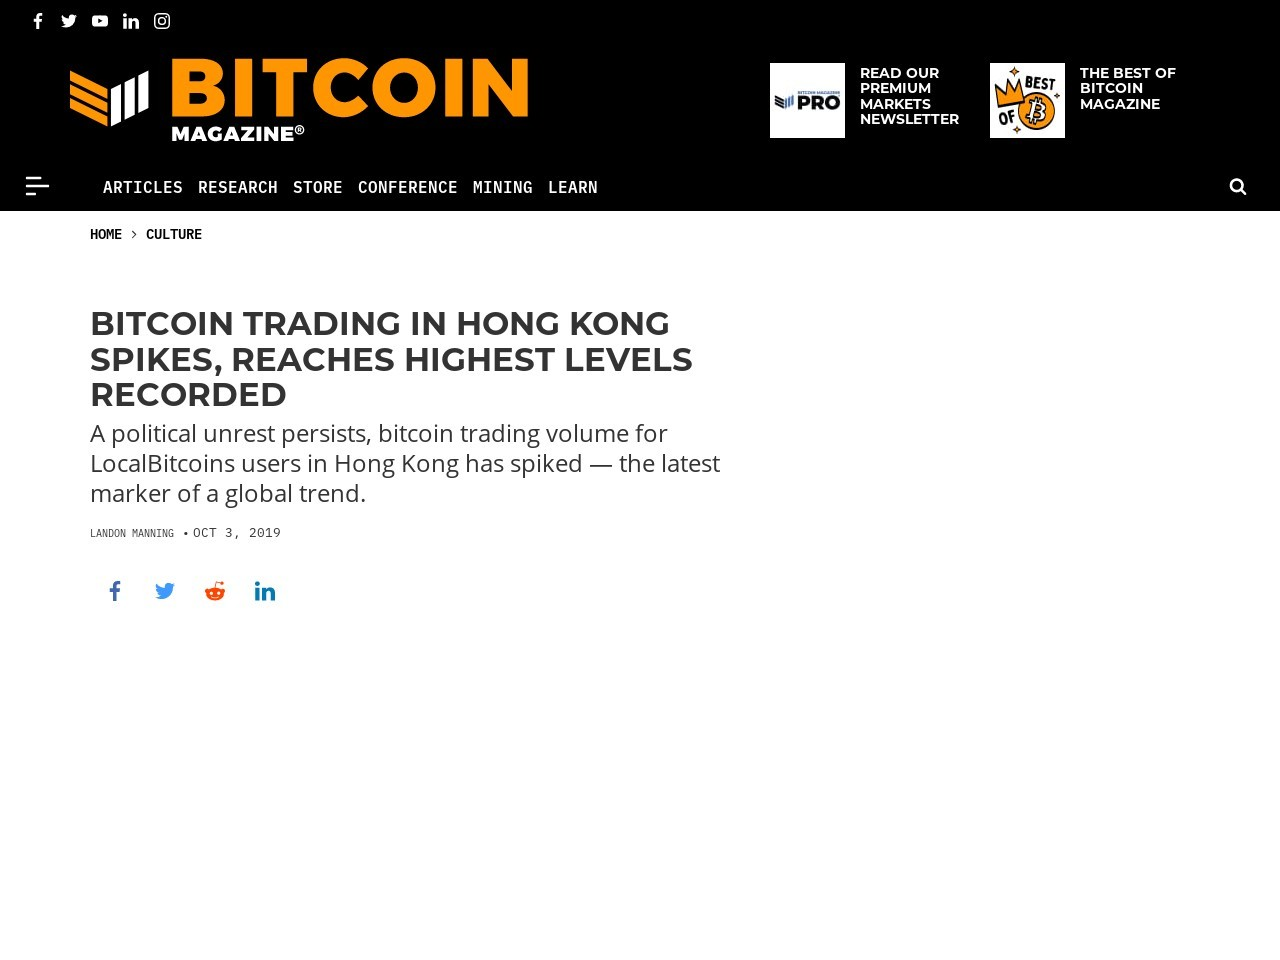 Bitcoin Trading in Hong Kong Spikes, Reaches Highest Levels Recorded